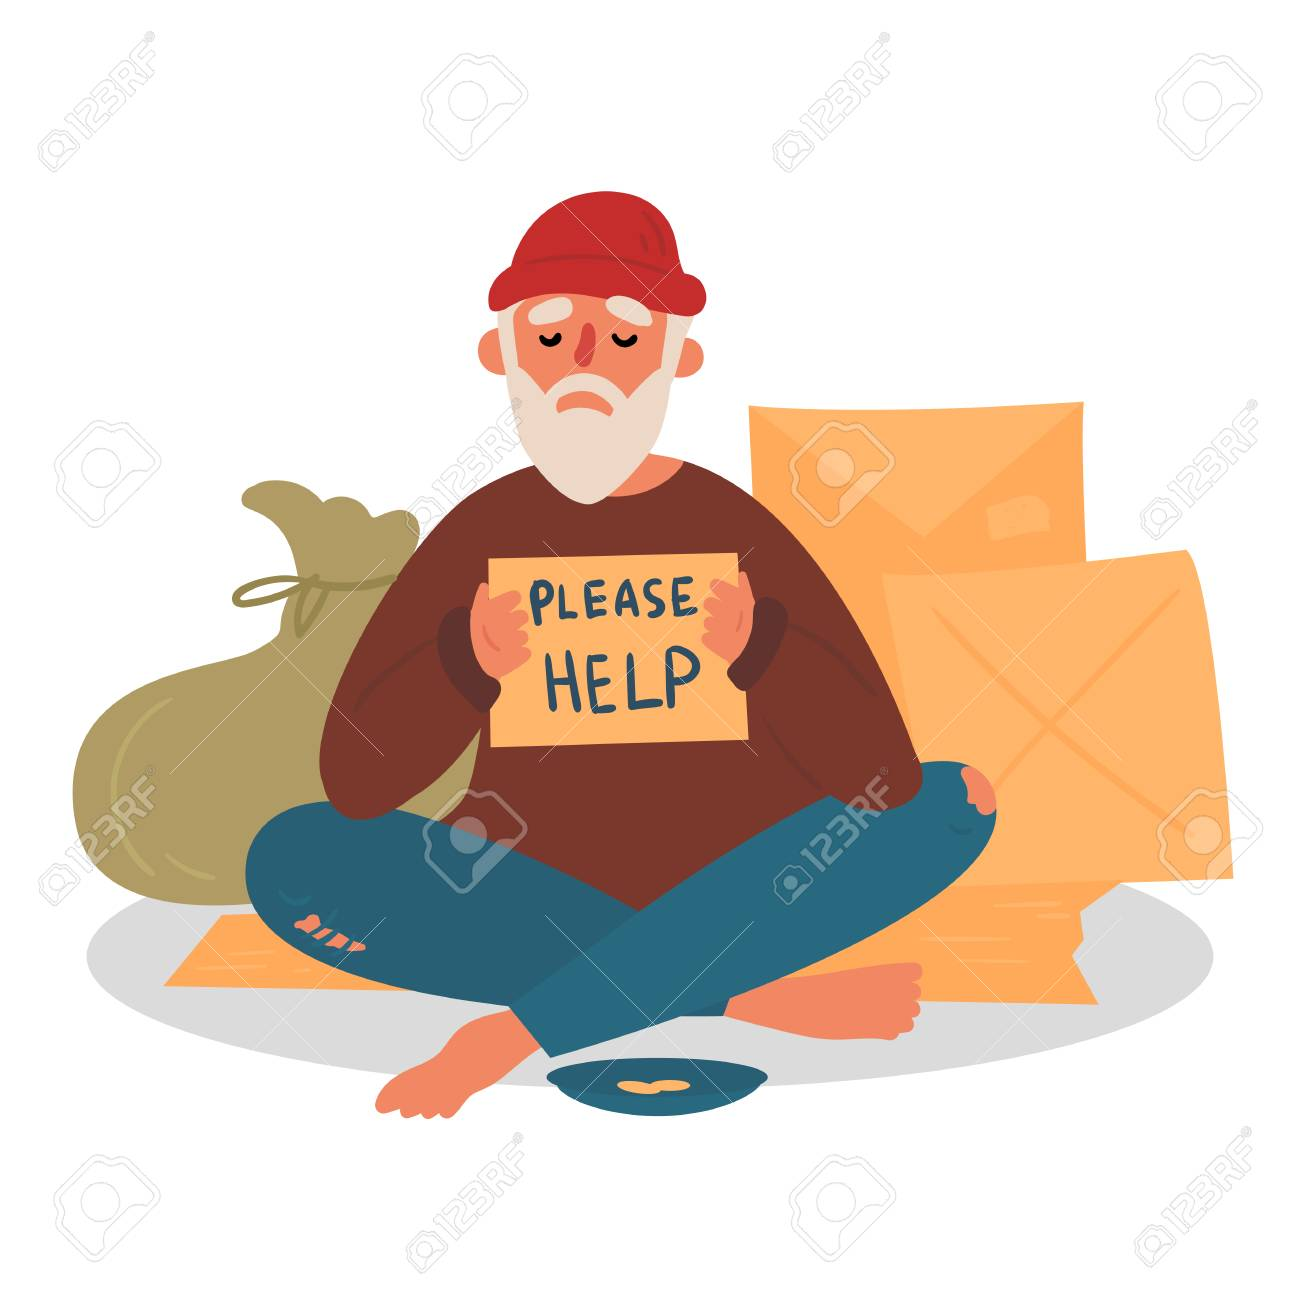 Poor homeless beggar. Poverty. Man with cardboard on the city street is asking for help. Old beggar with hope and please help text. Cardbox, bag, mendicant and beggar plate with coins. Vector flat - 122546502